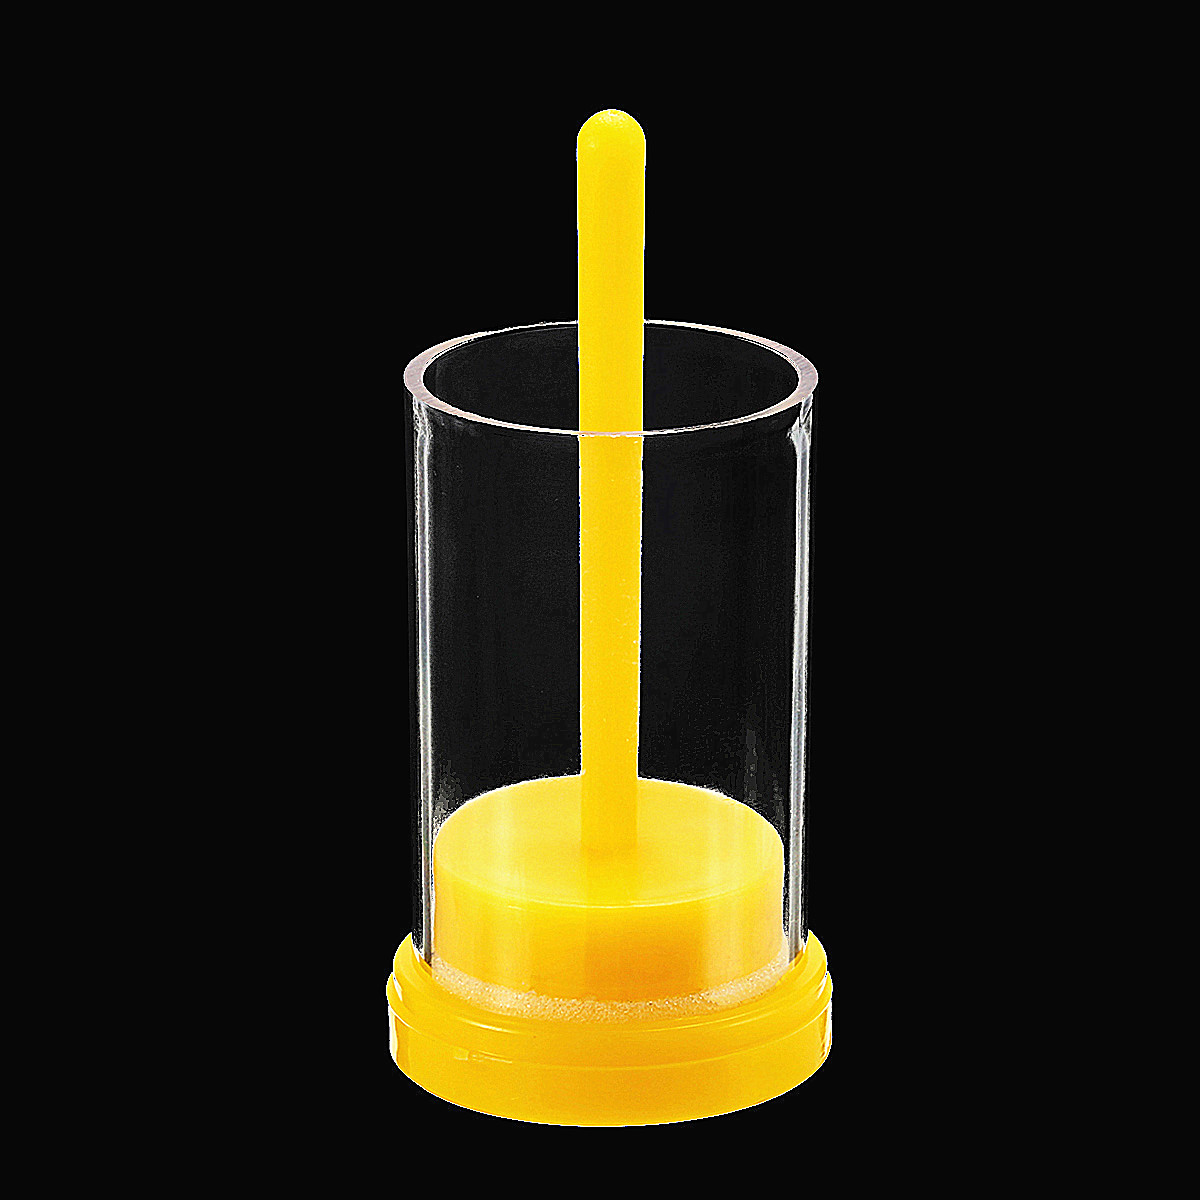 Bee Marking Cage Plastic Bee Marking Bottle Queen Bee Marking Cage Marker Bottle w/ Plunger Beekeeping Equipment